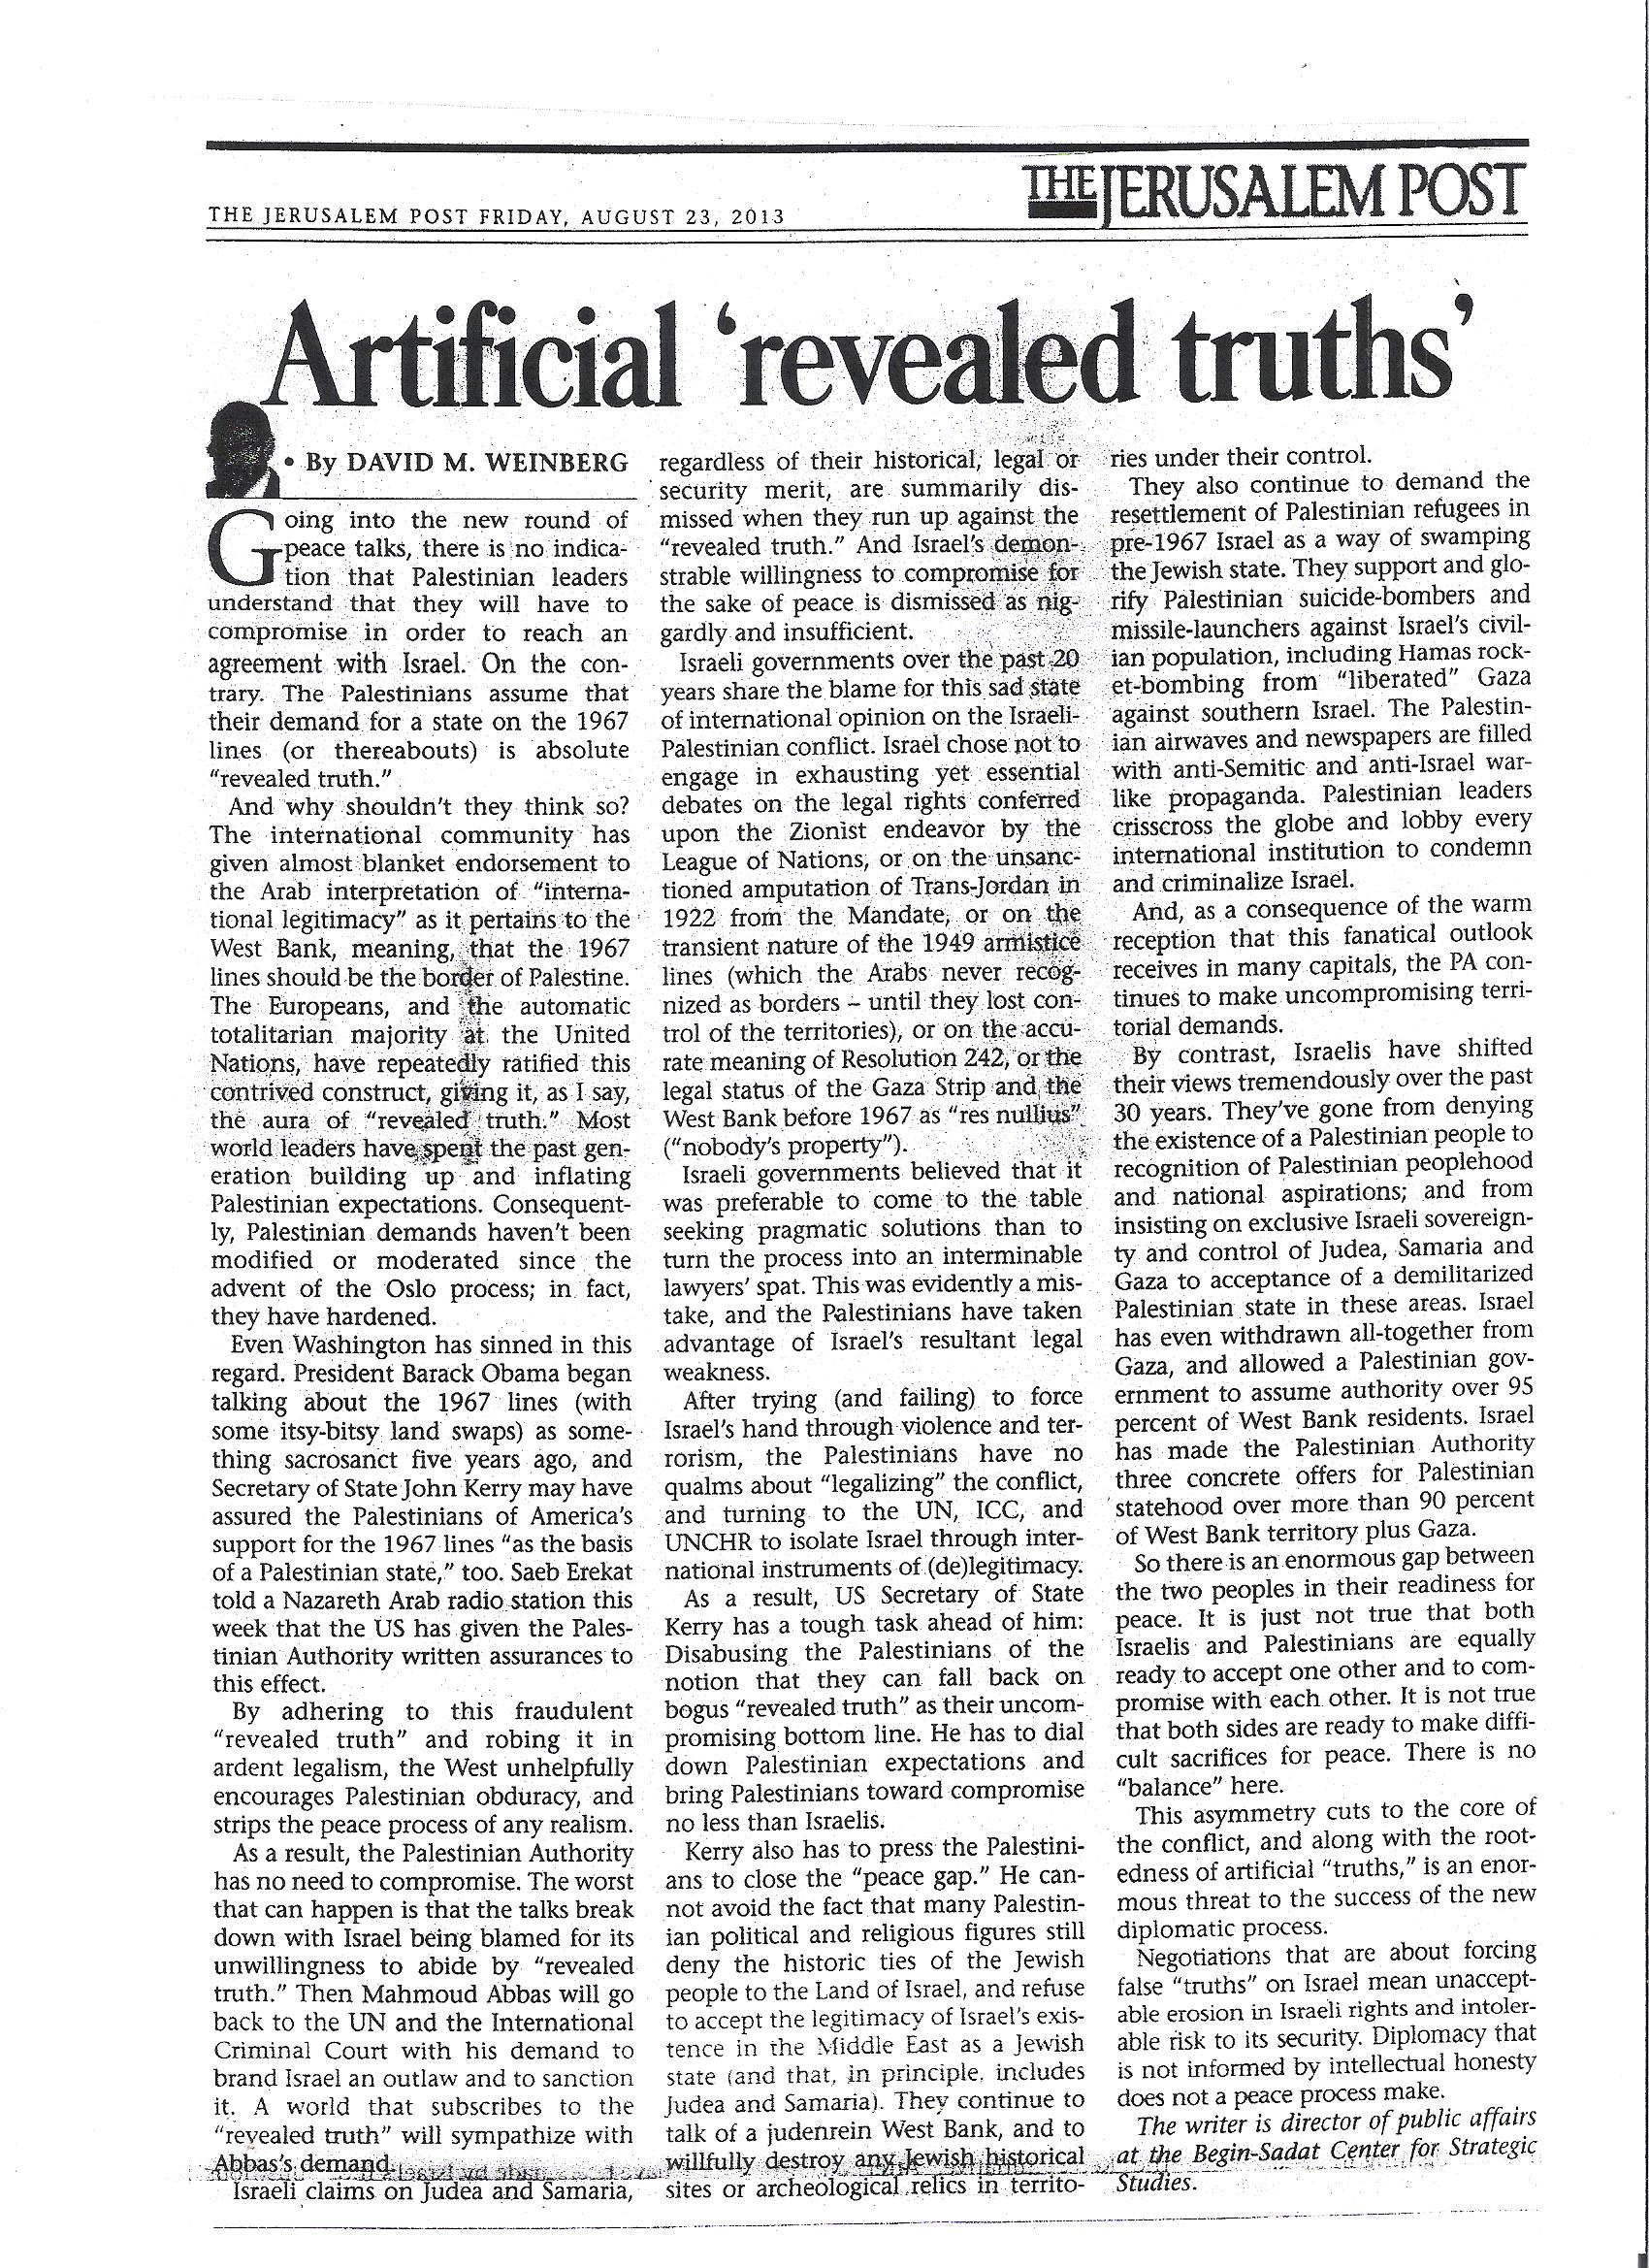 artificial revealed truths - JPost - 23 Aug 2013